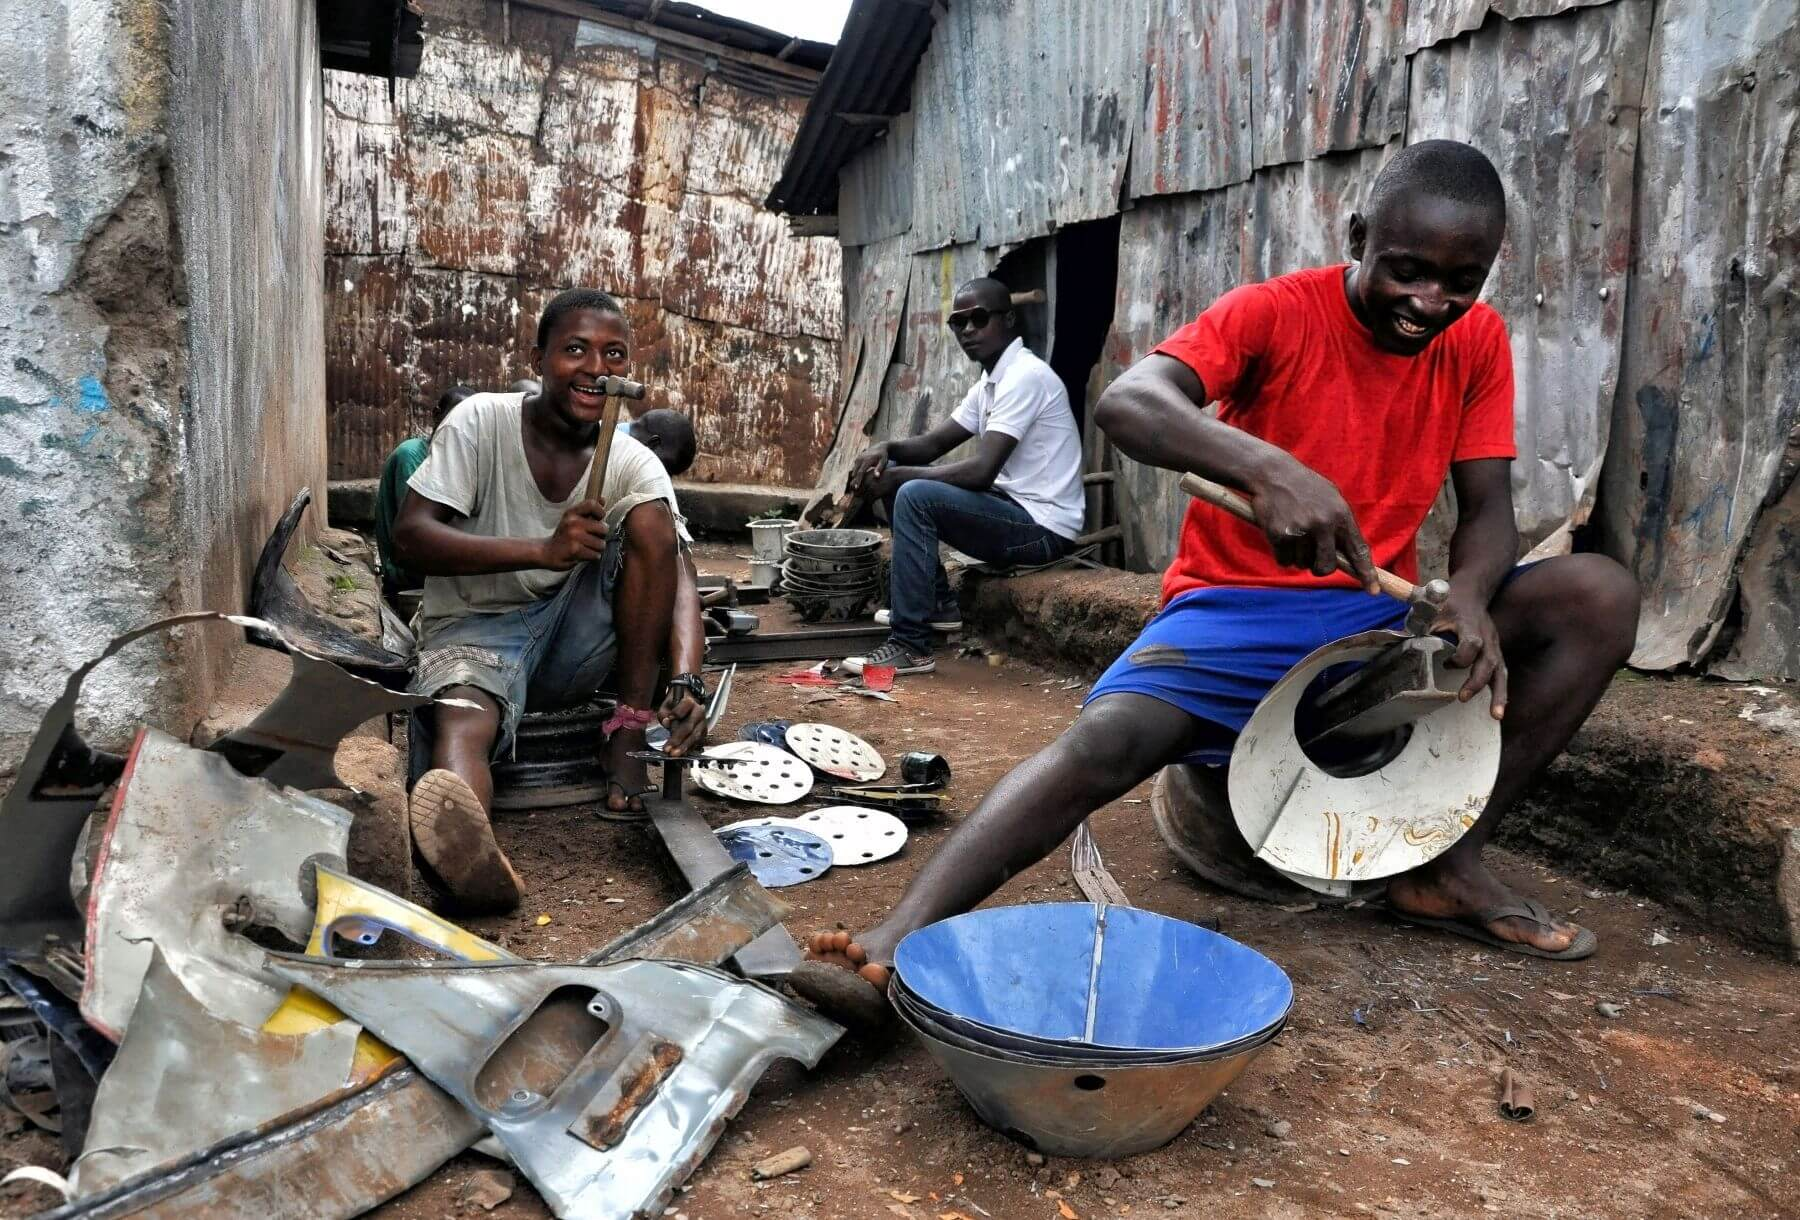 Metal recycling apprentices, by Saula Cordova in Makeni, Sierra Leone (1st place winner)